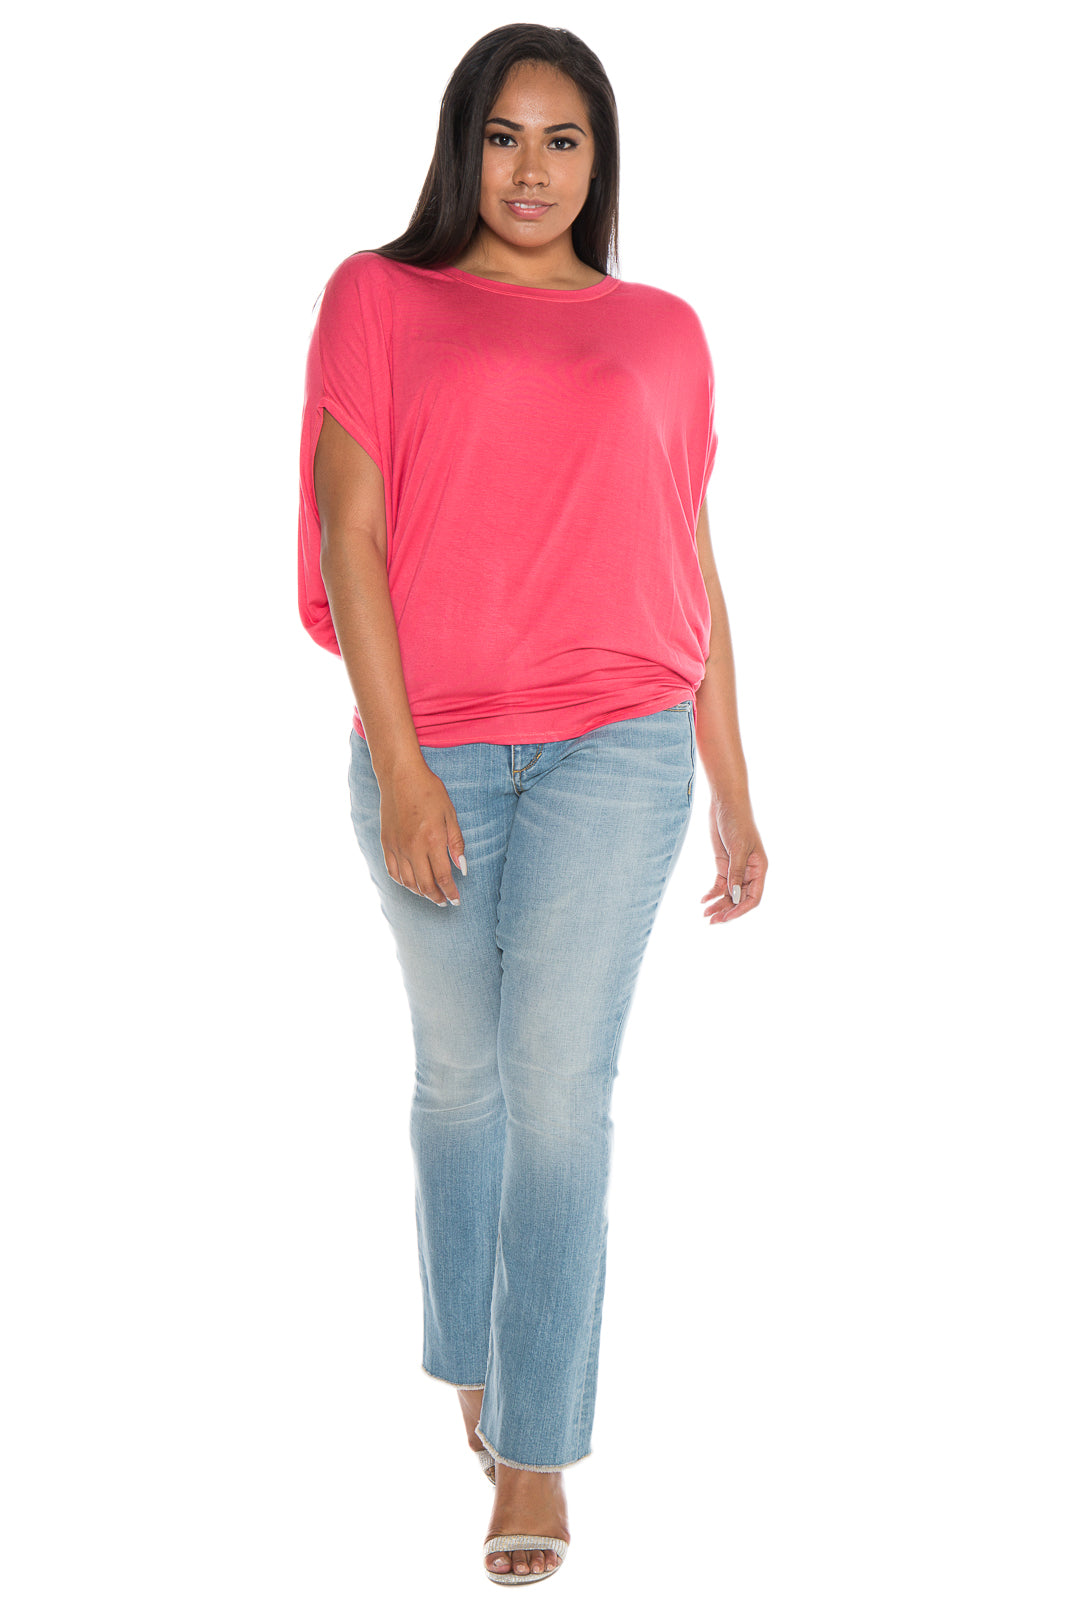 The Scoop Neck Dolman - CORAL